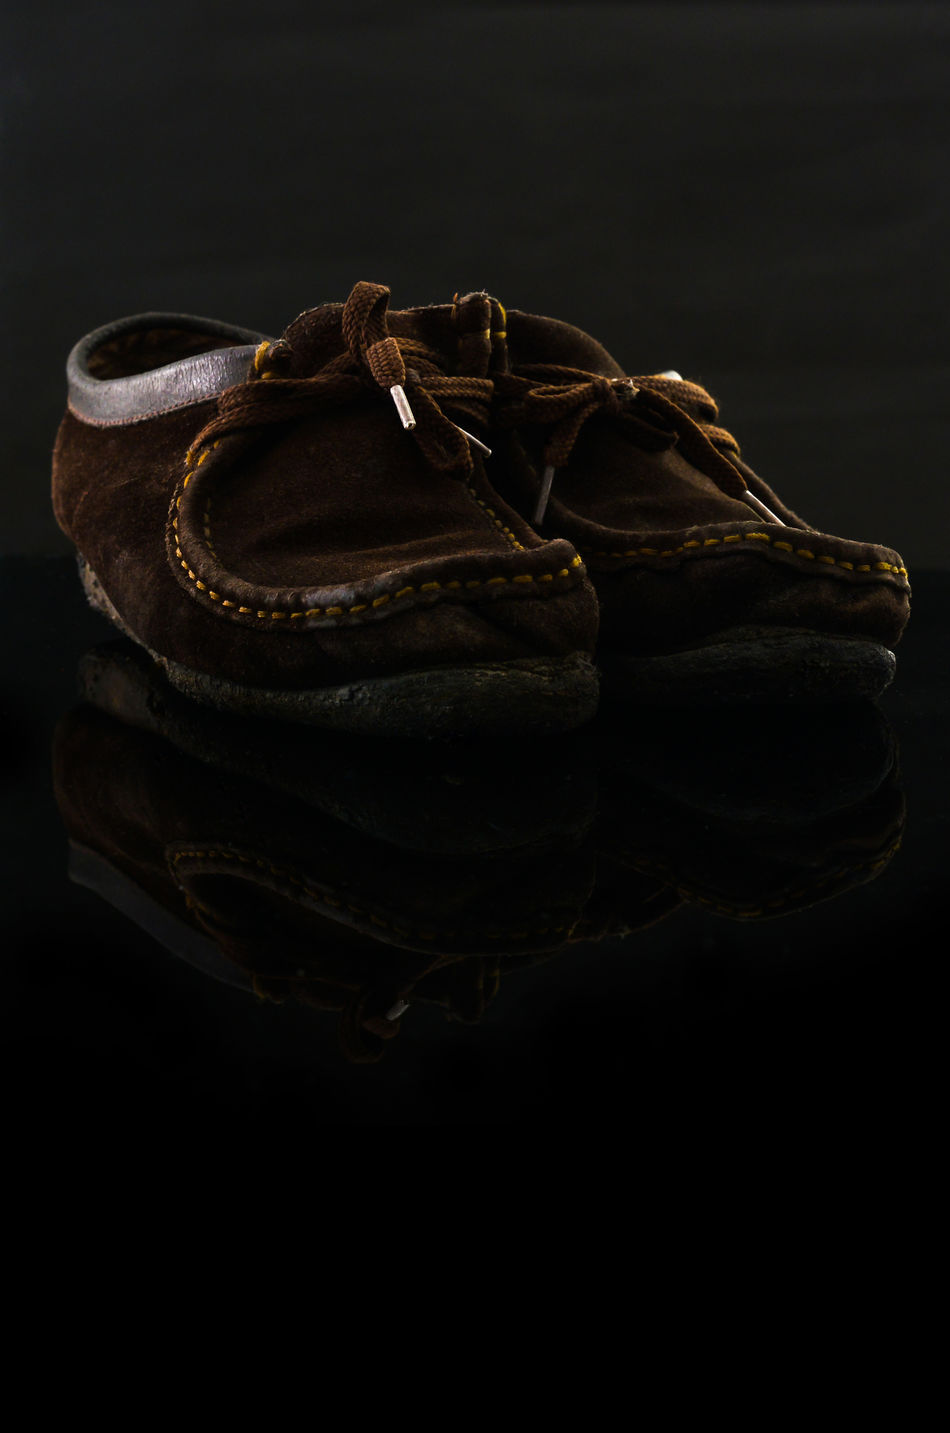 Black Background Brown Leather Shoes Shoes Still Life